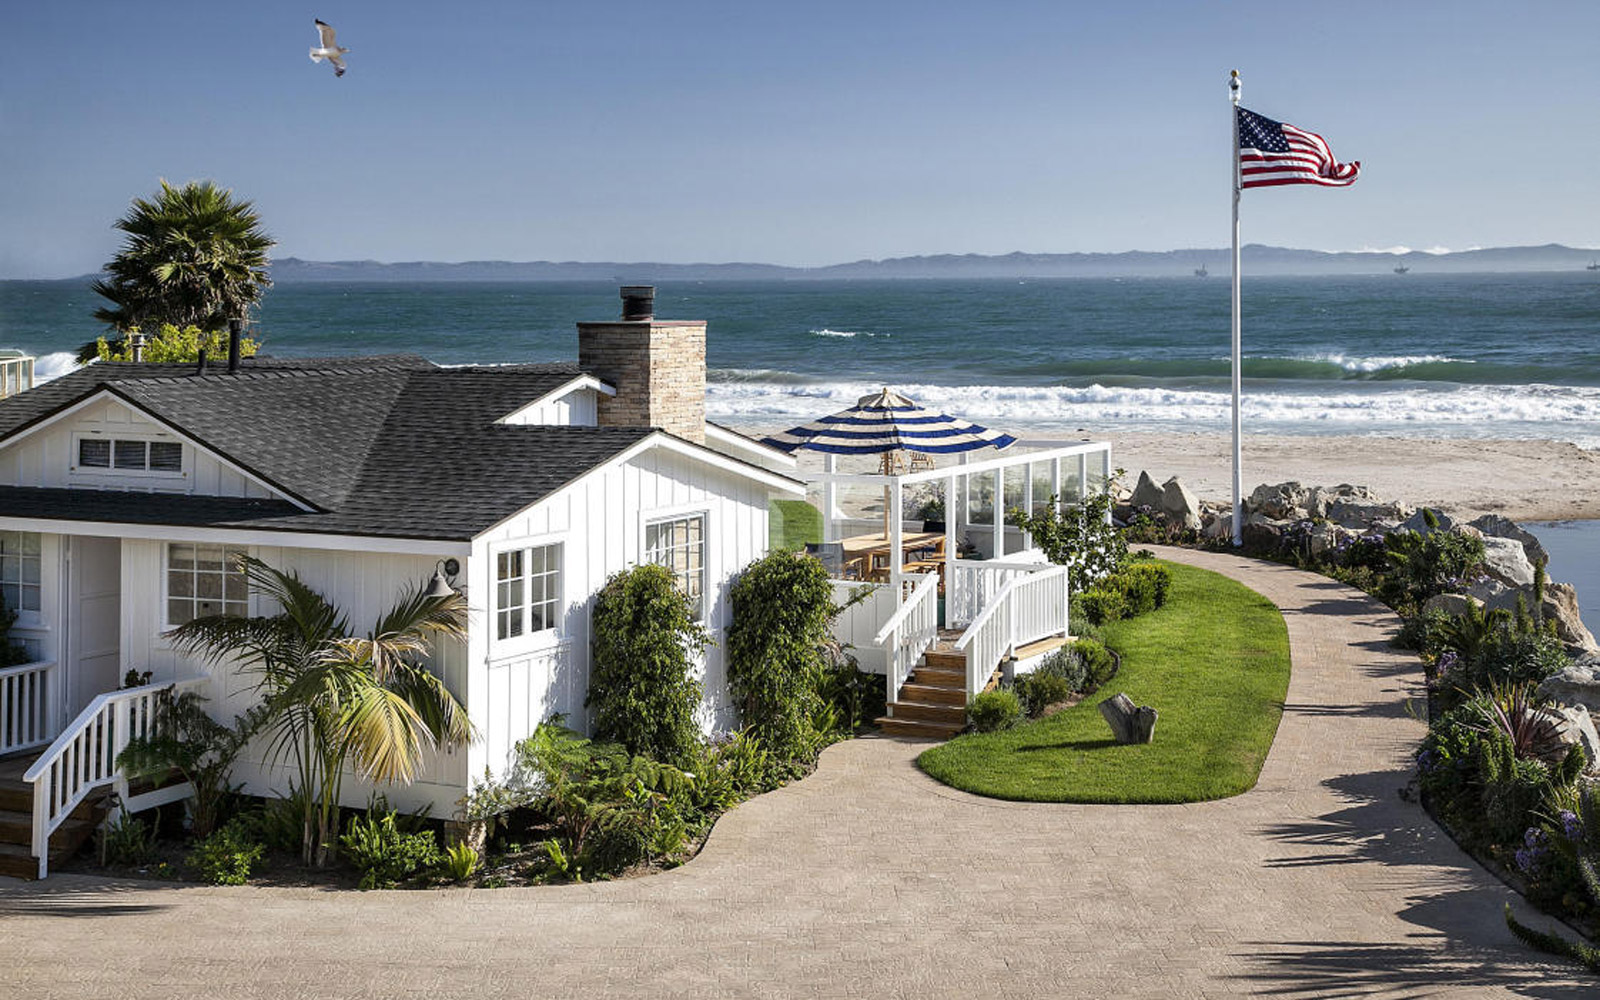 View of Mila Kunis and Ashton Kutcher's Beach House from the Back